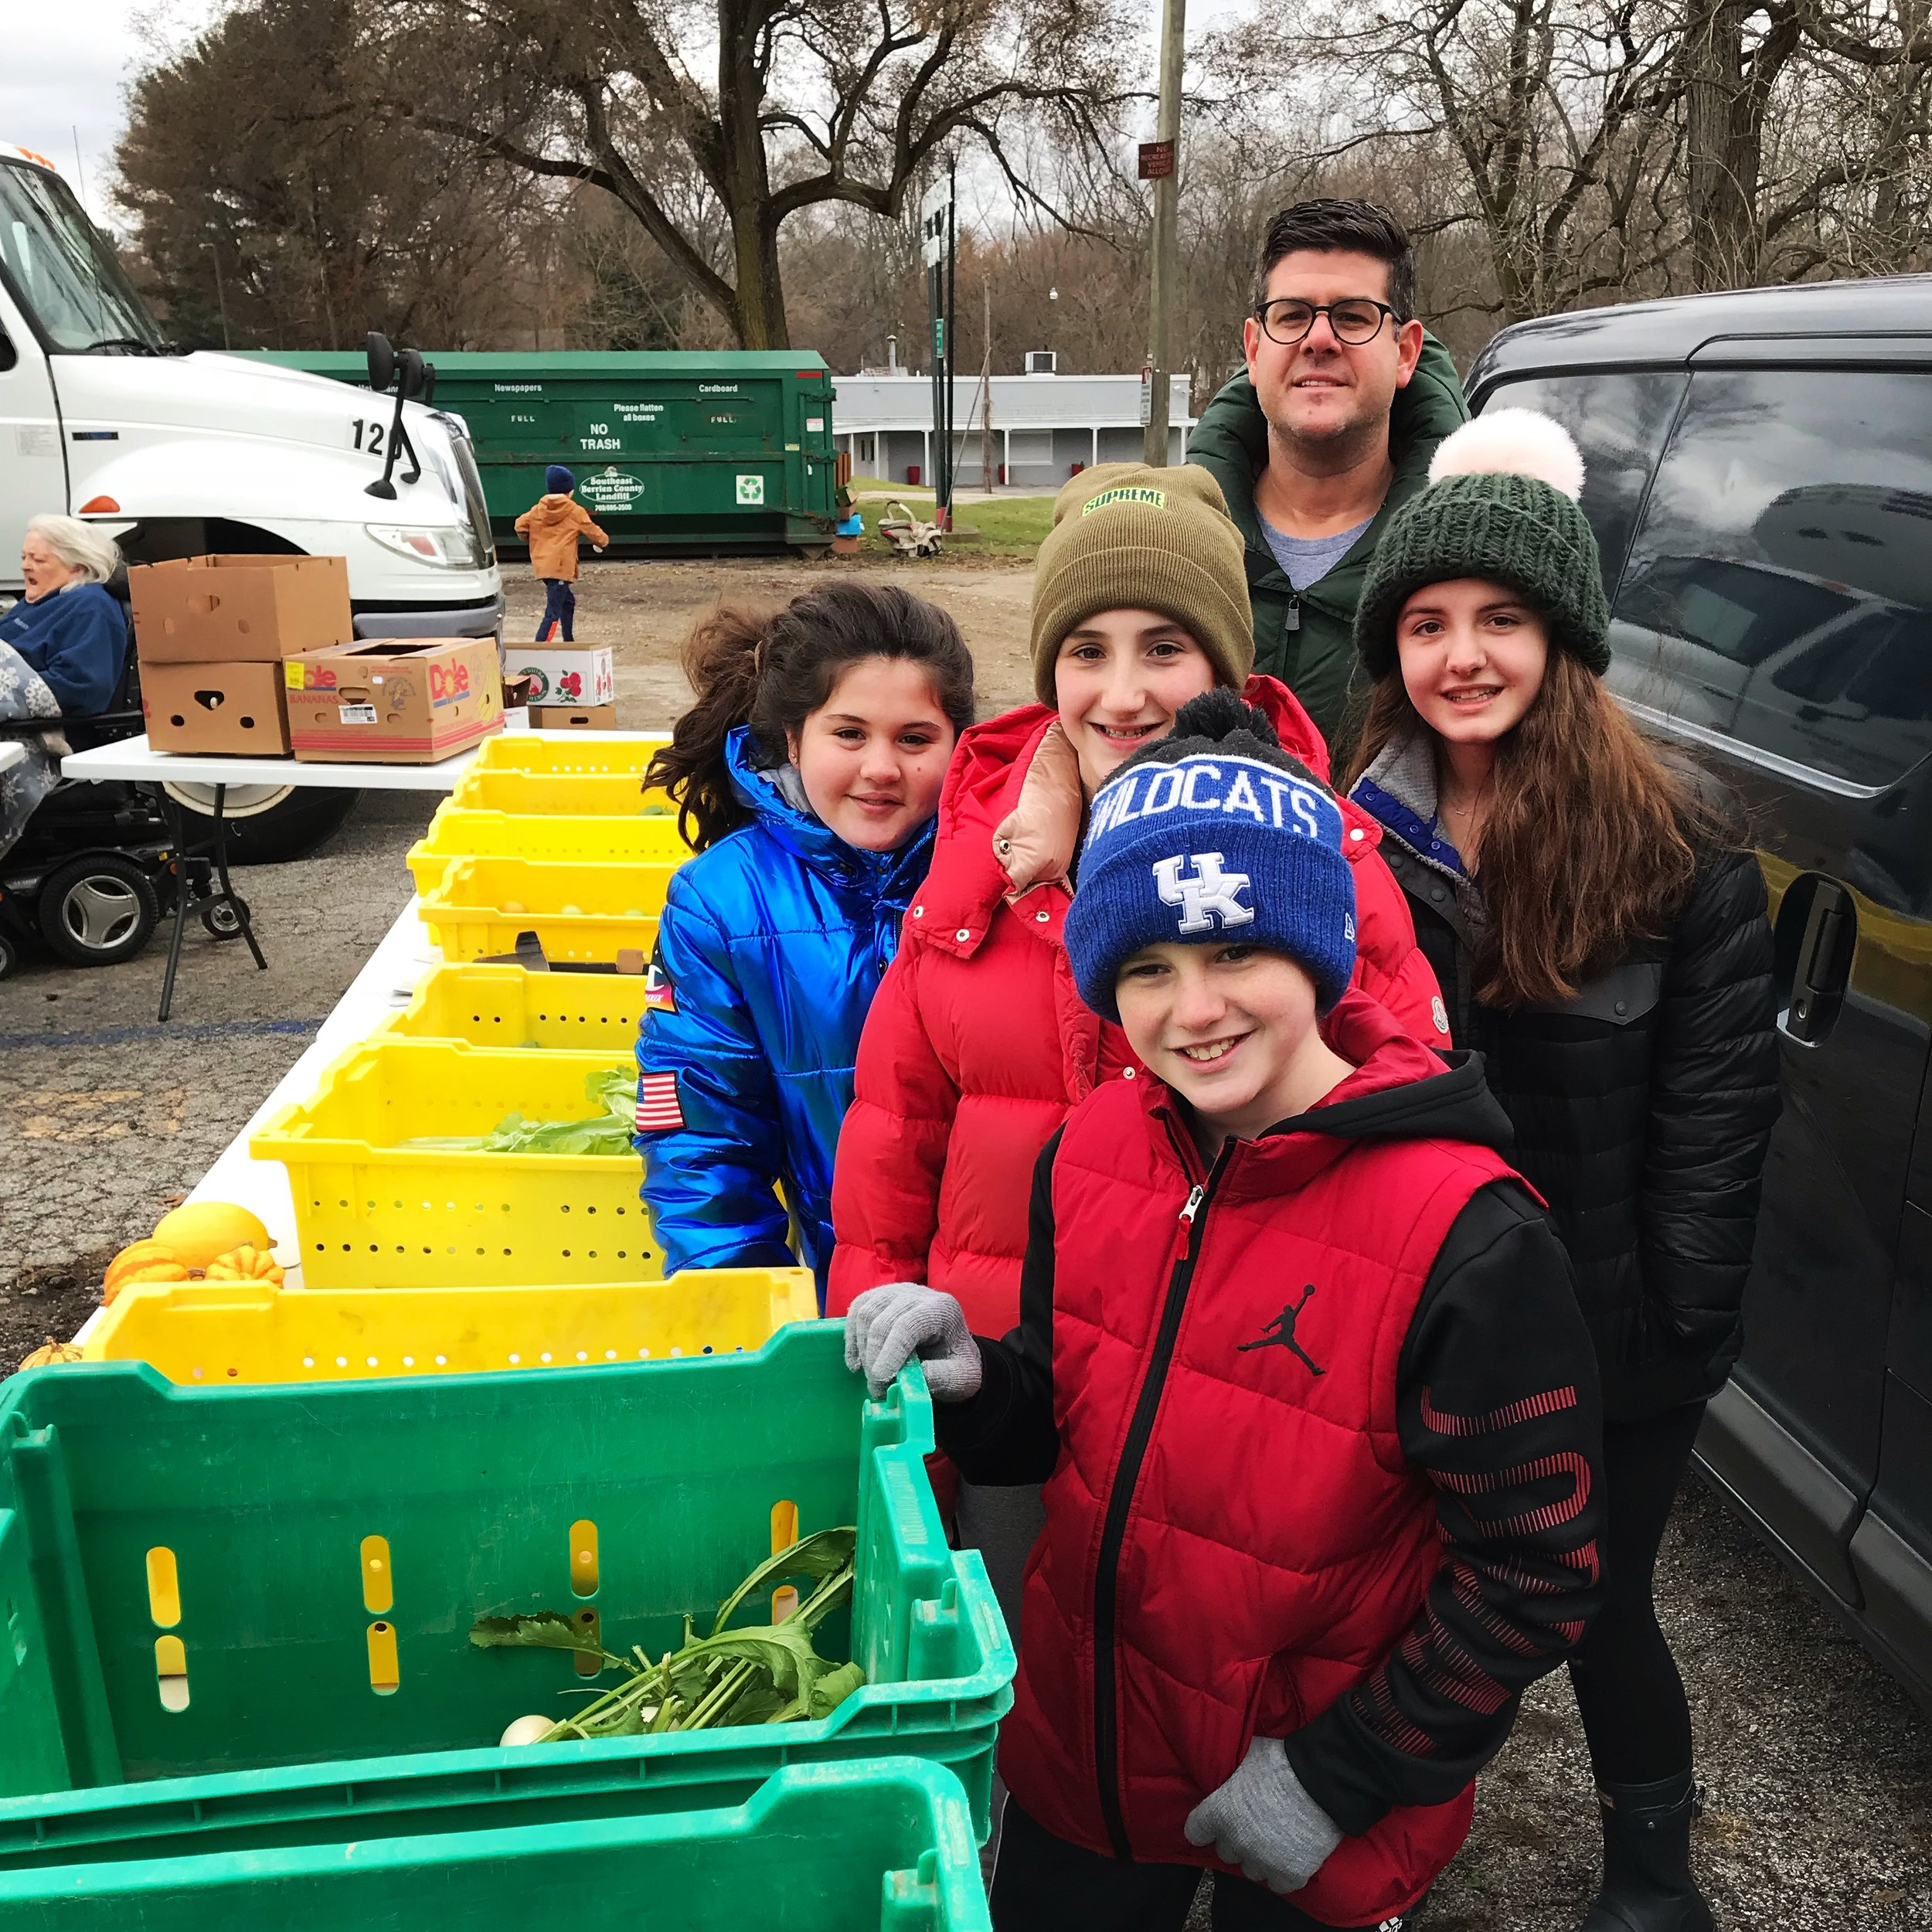 The Harris family at our Thanksgiving Mobile Food Pantry in New Troy, MI